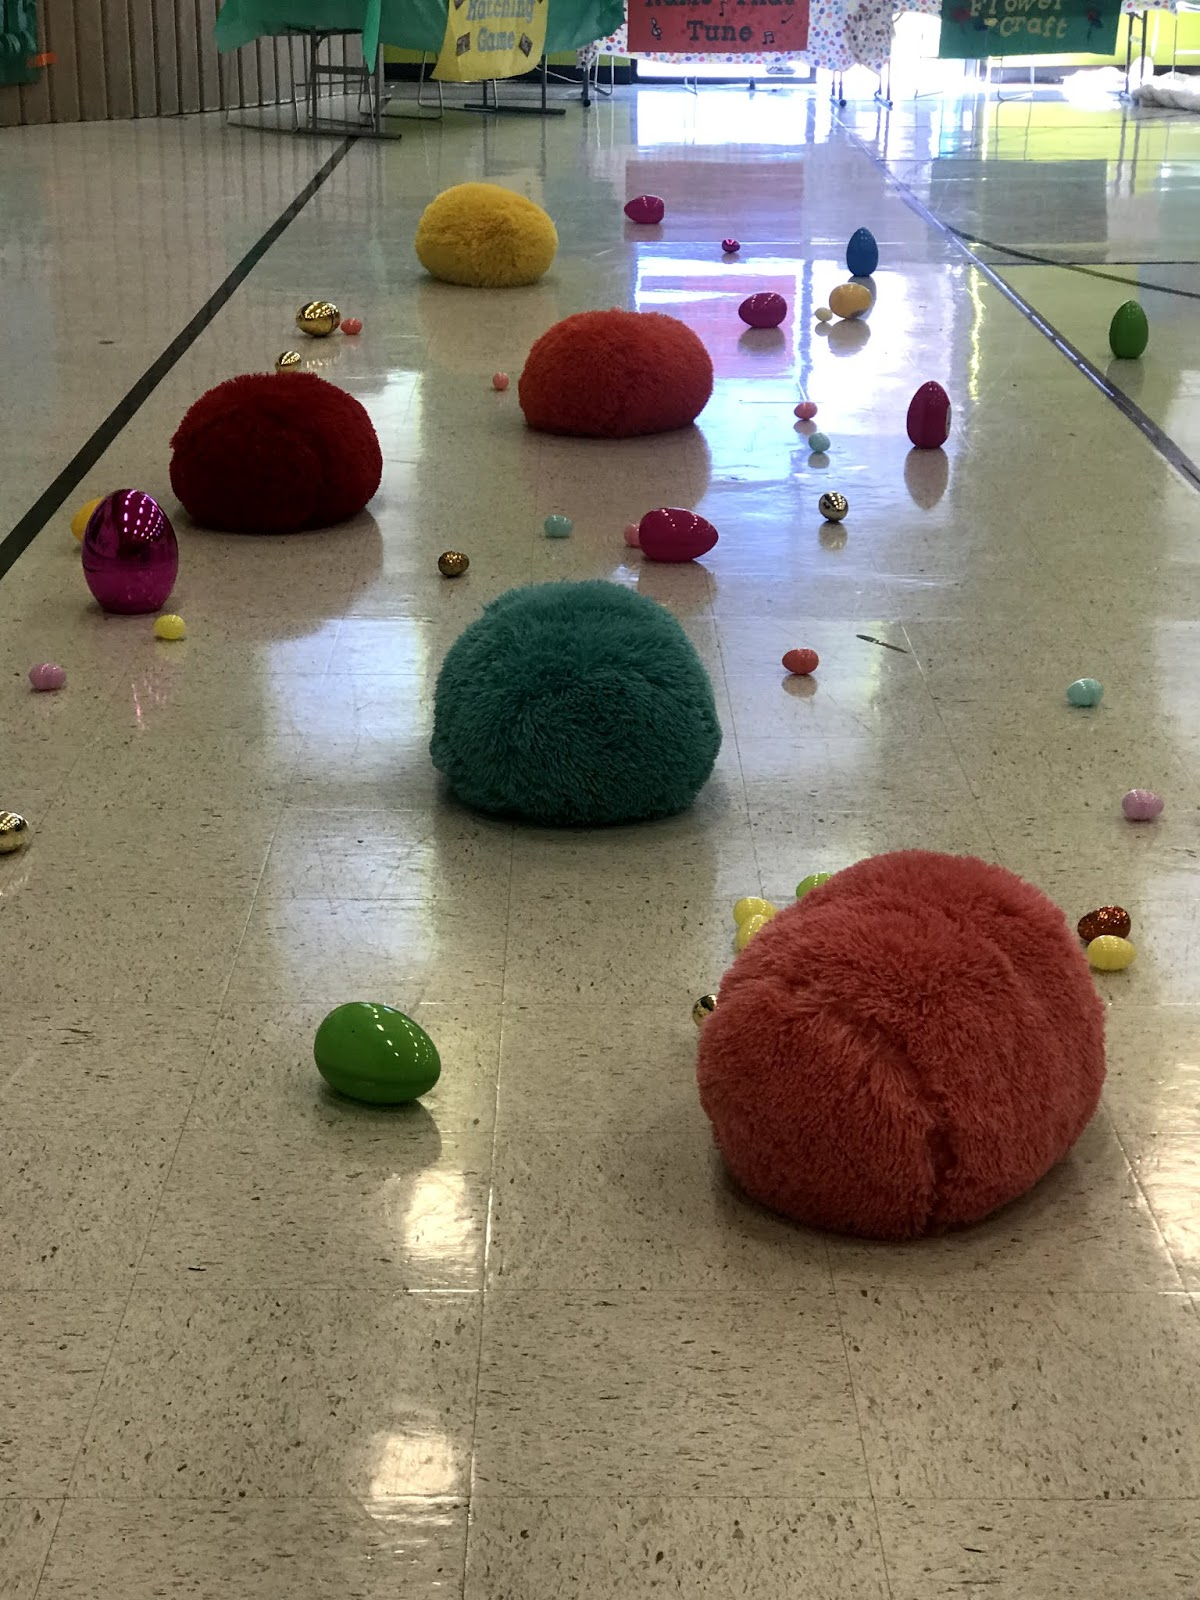 an image of the gym floor with bright color medium and large different types of eggs